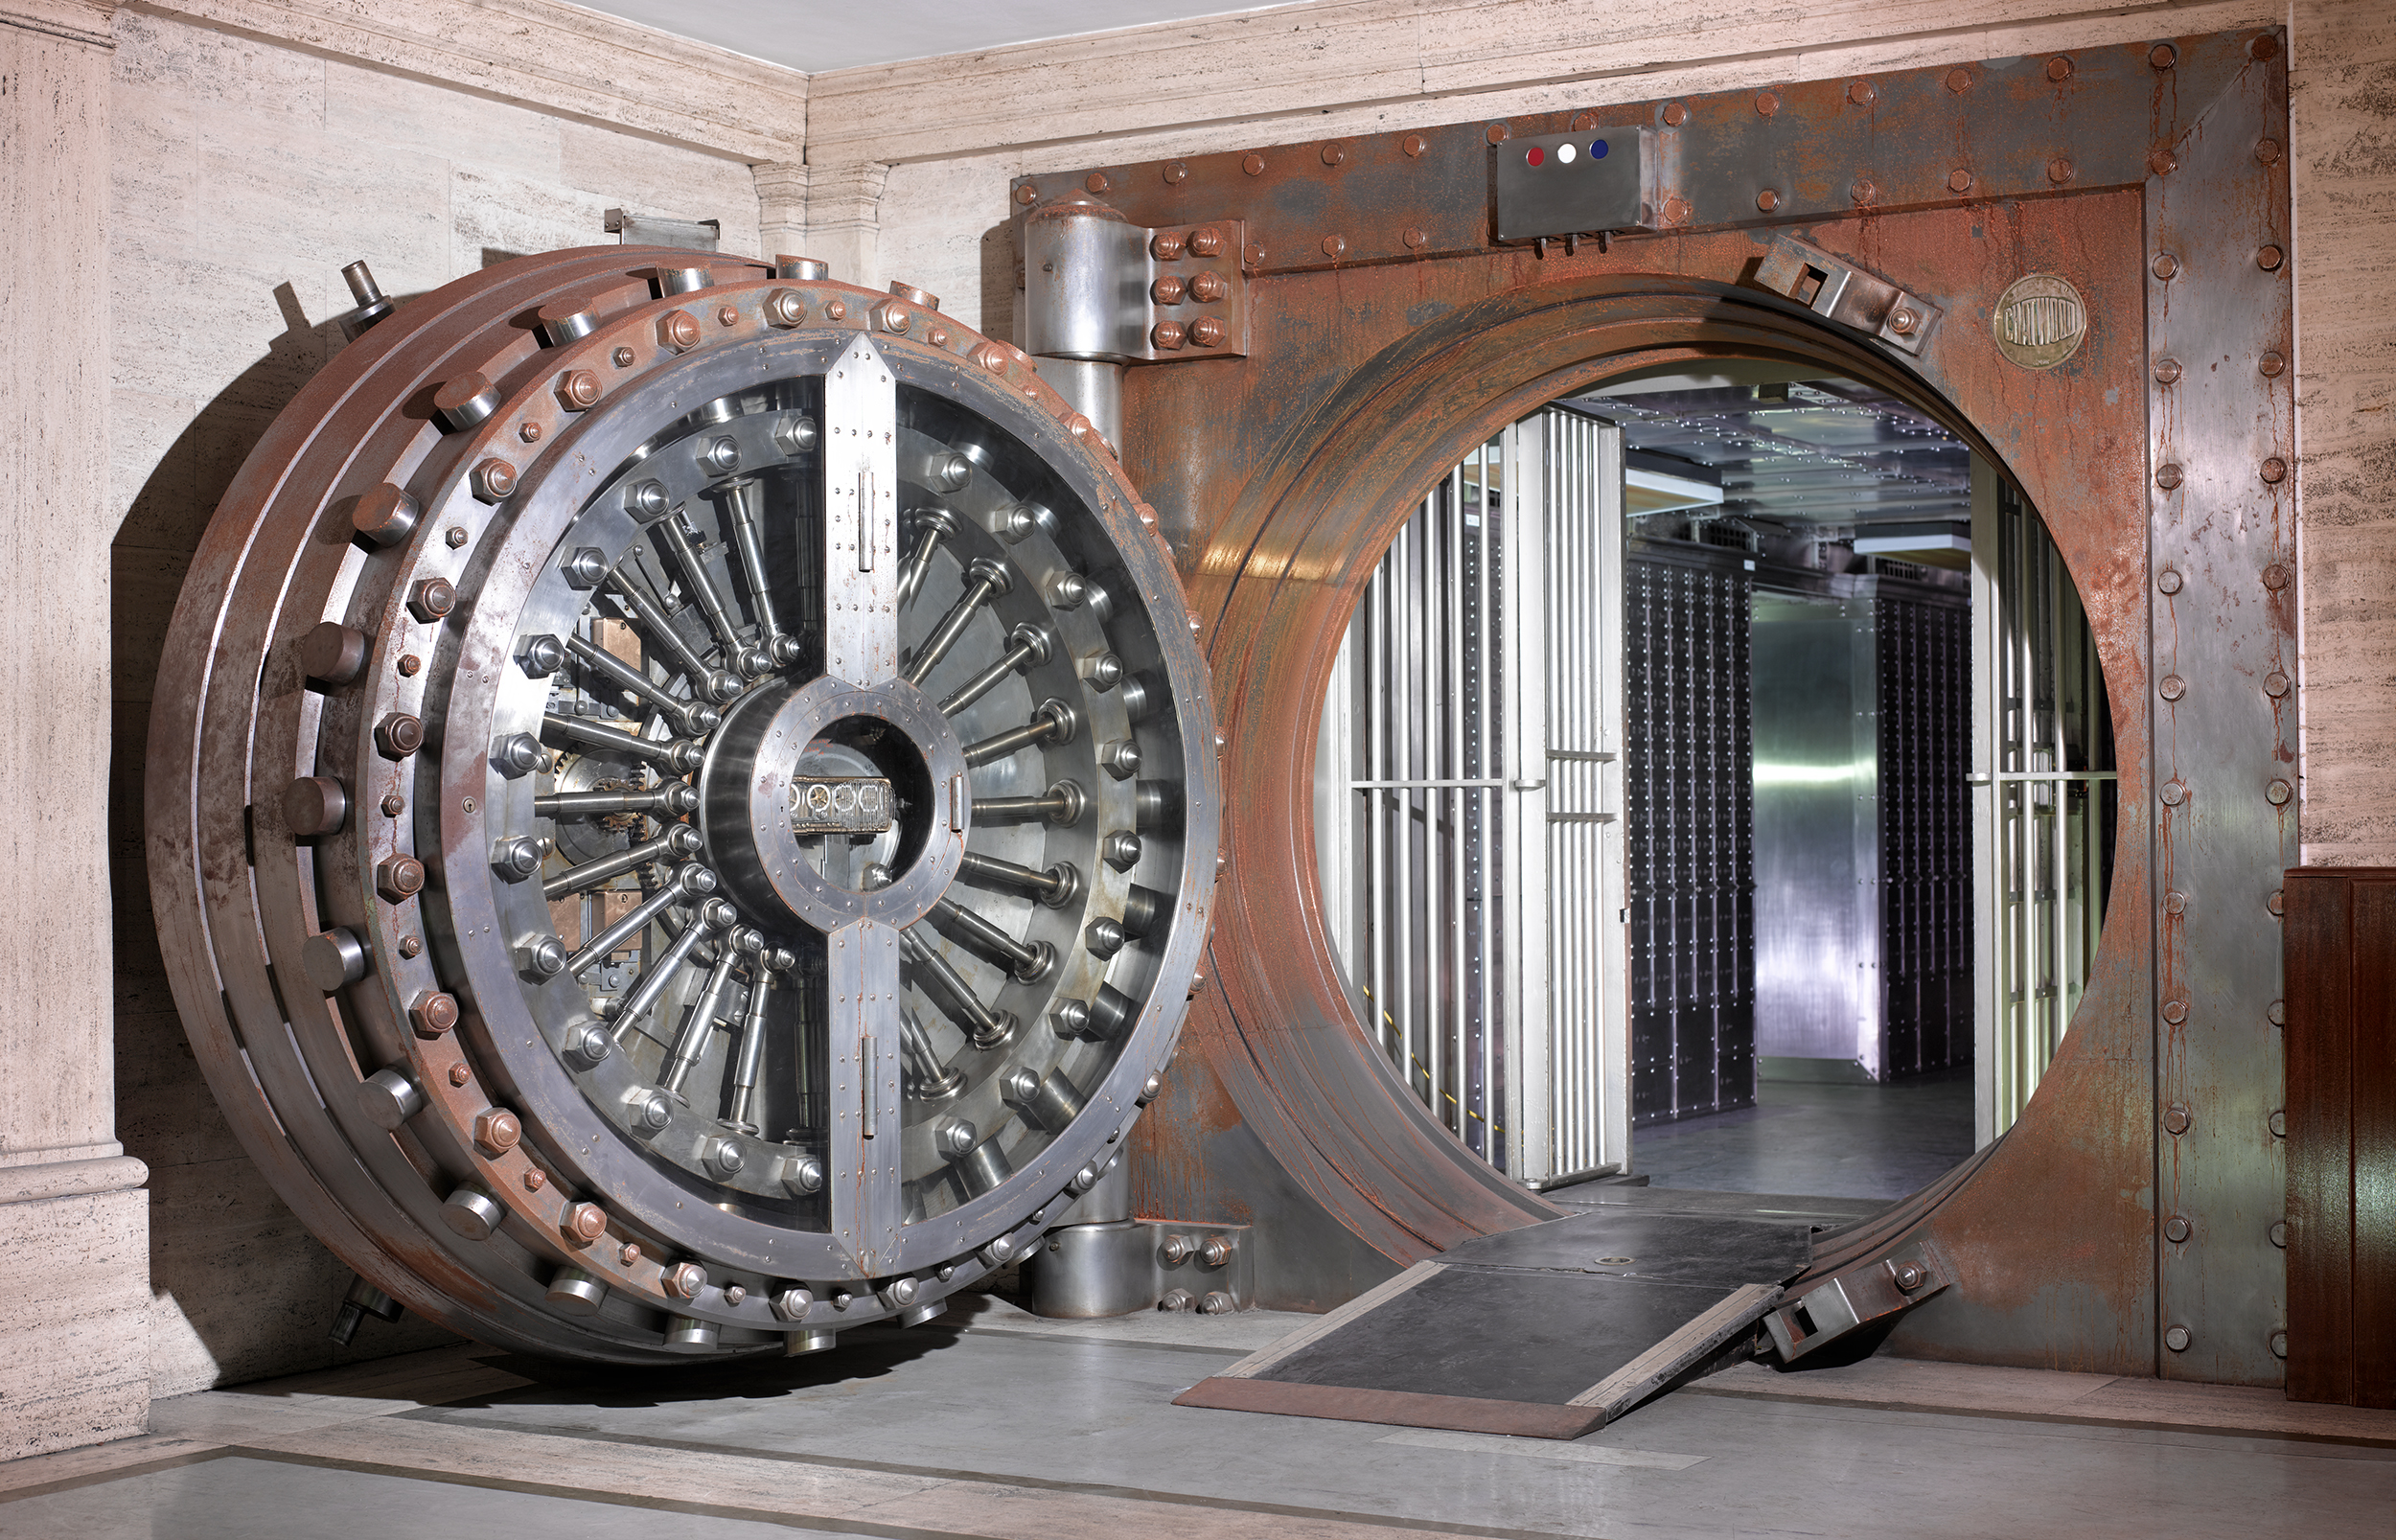 Midland Bank Vault. Copyright Peter Dazeley_credit photographer Peter DazeleyCannot_be_used_without_written_permission